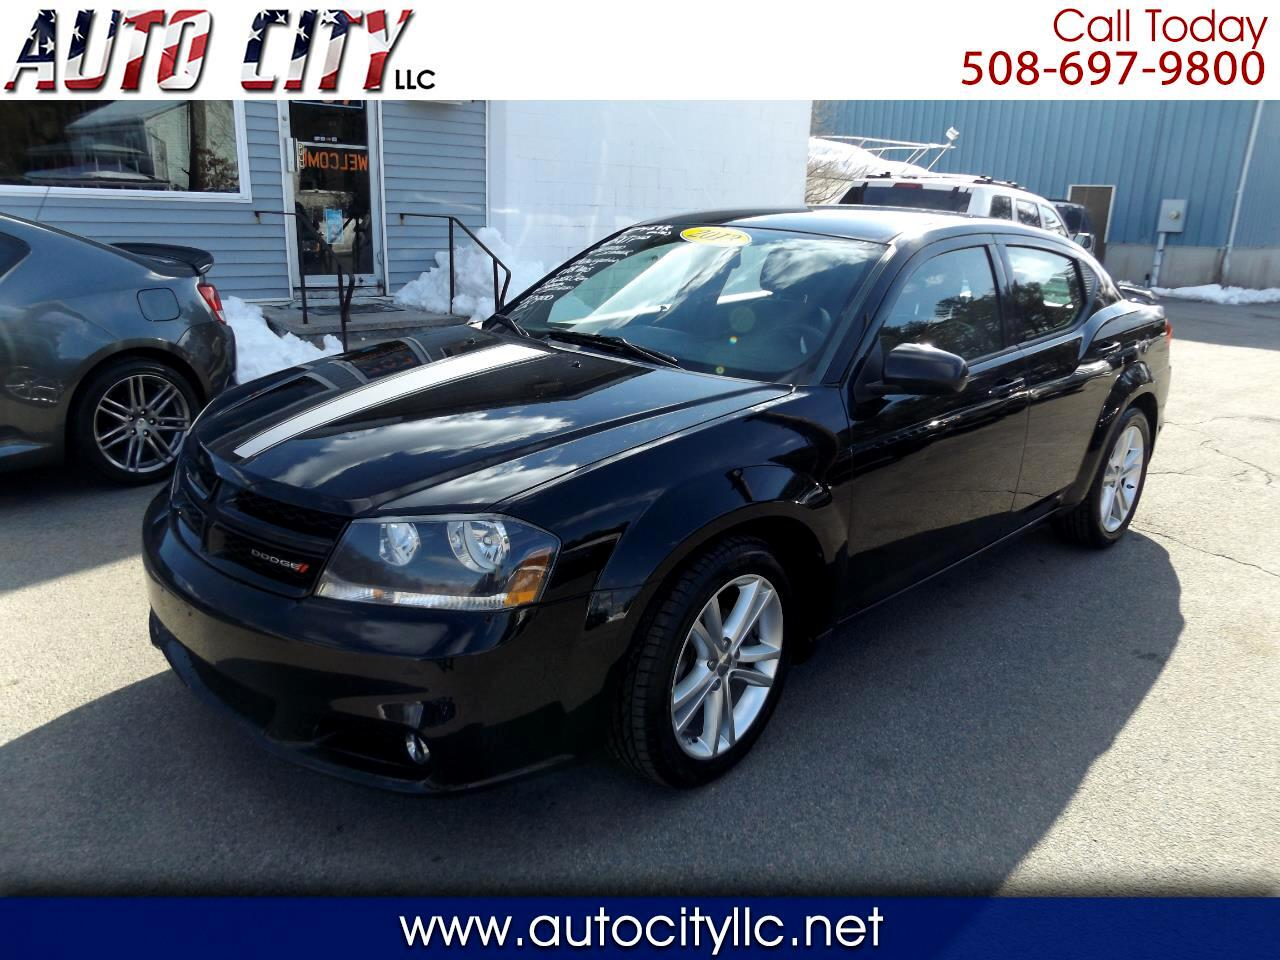 2013 Dodge Avenger SXT PLUS